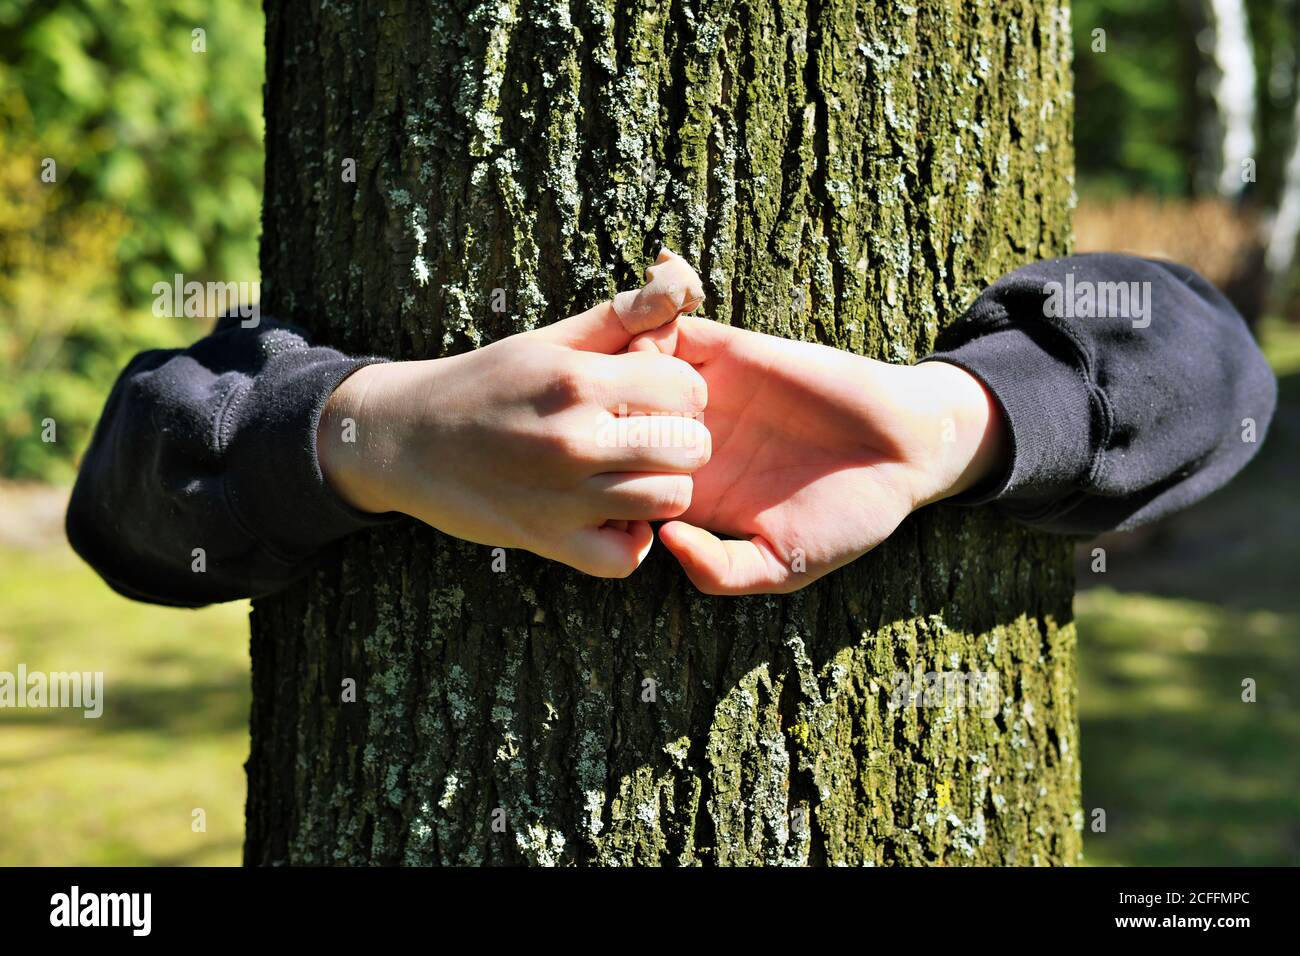 Kod's hands embracing an oak tree trunk, feeling at one with nature Stock Photo